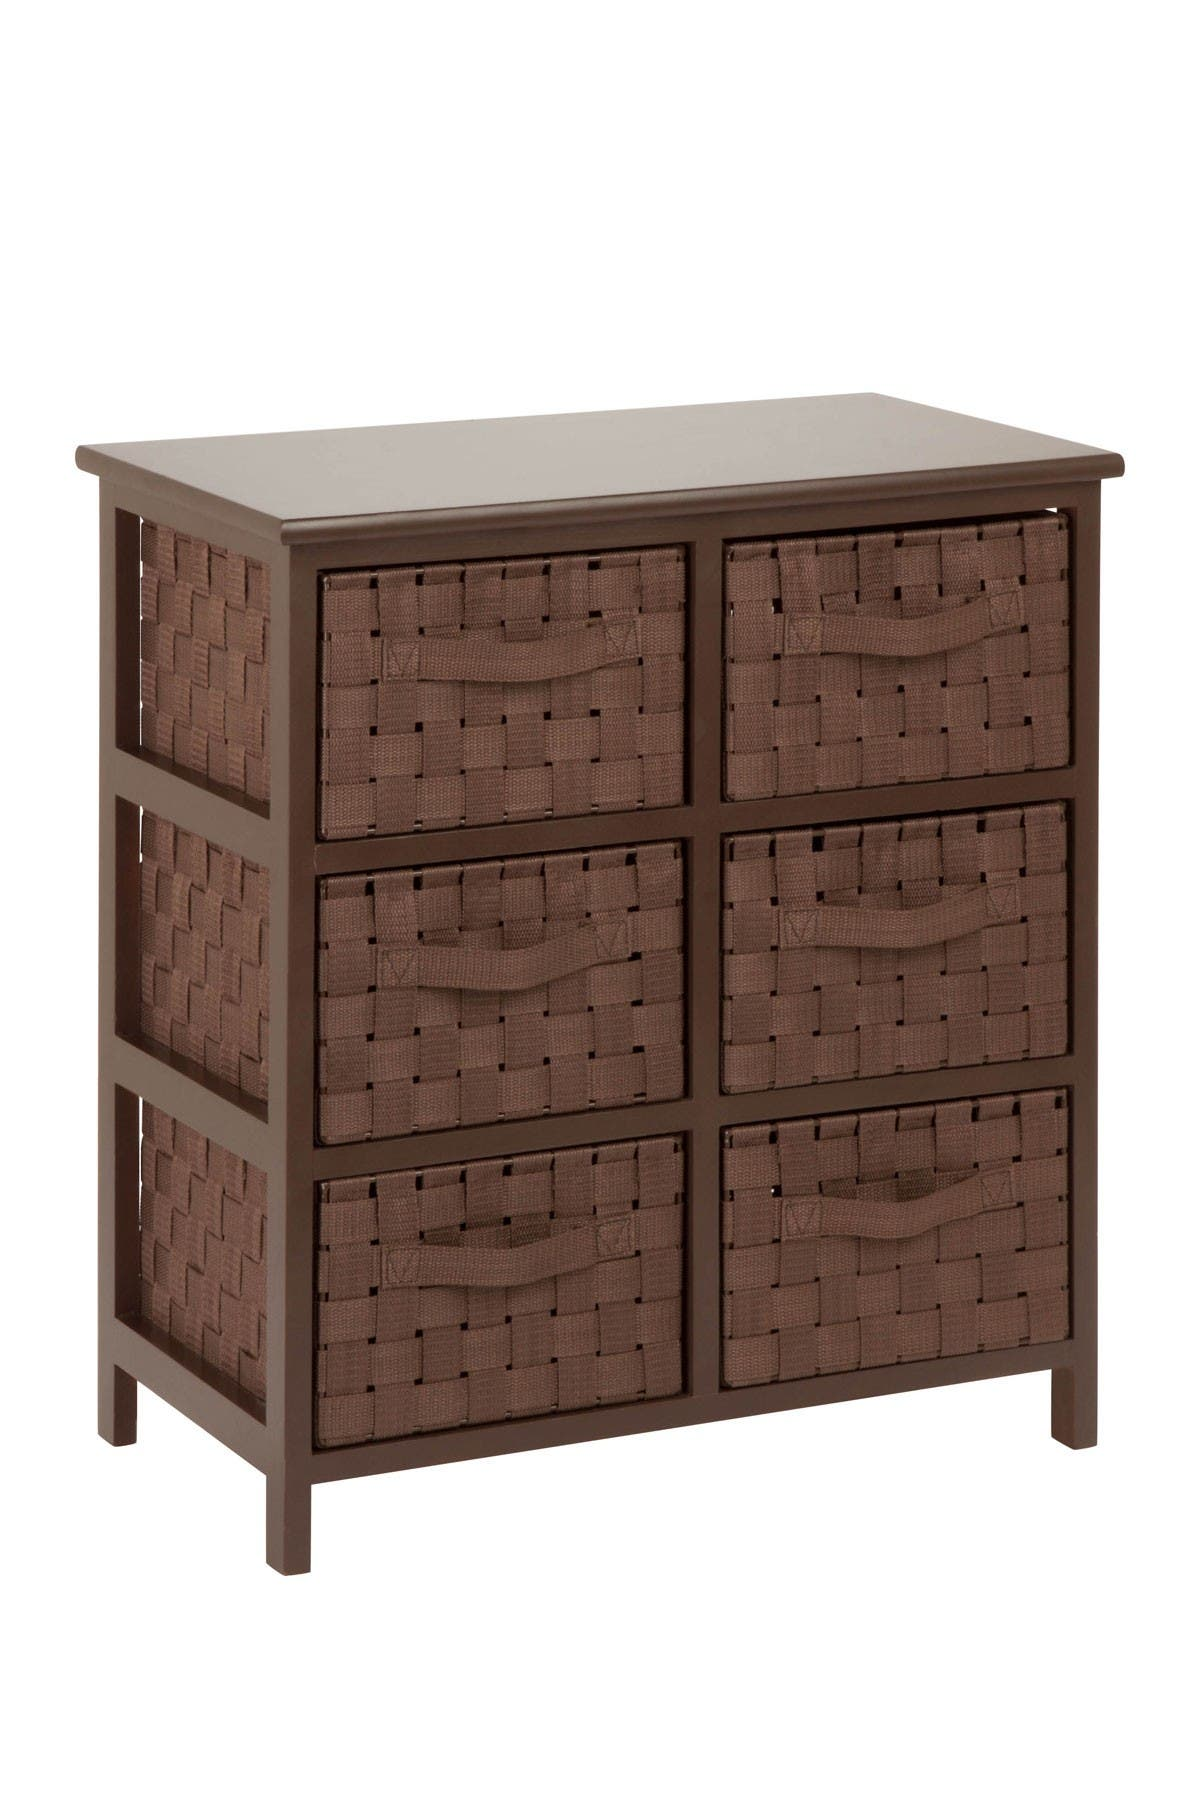 Image of Honey-Can-Do Java Brown Woven 6-Drawer Chest